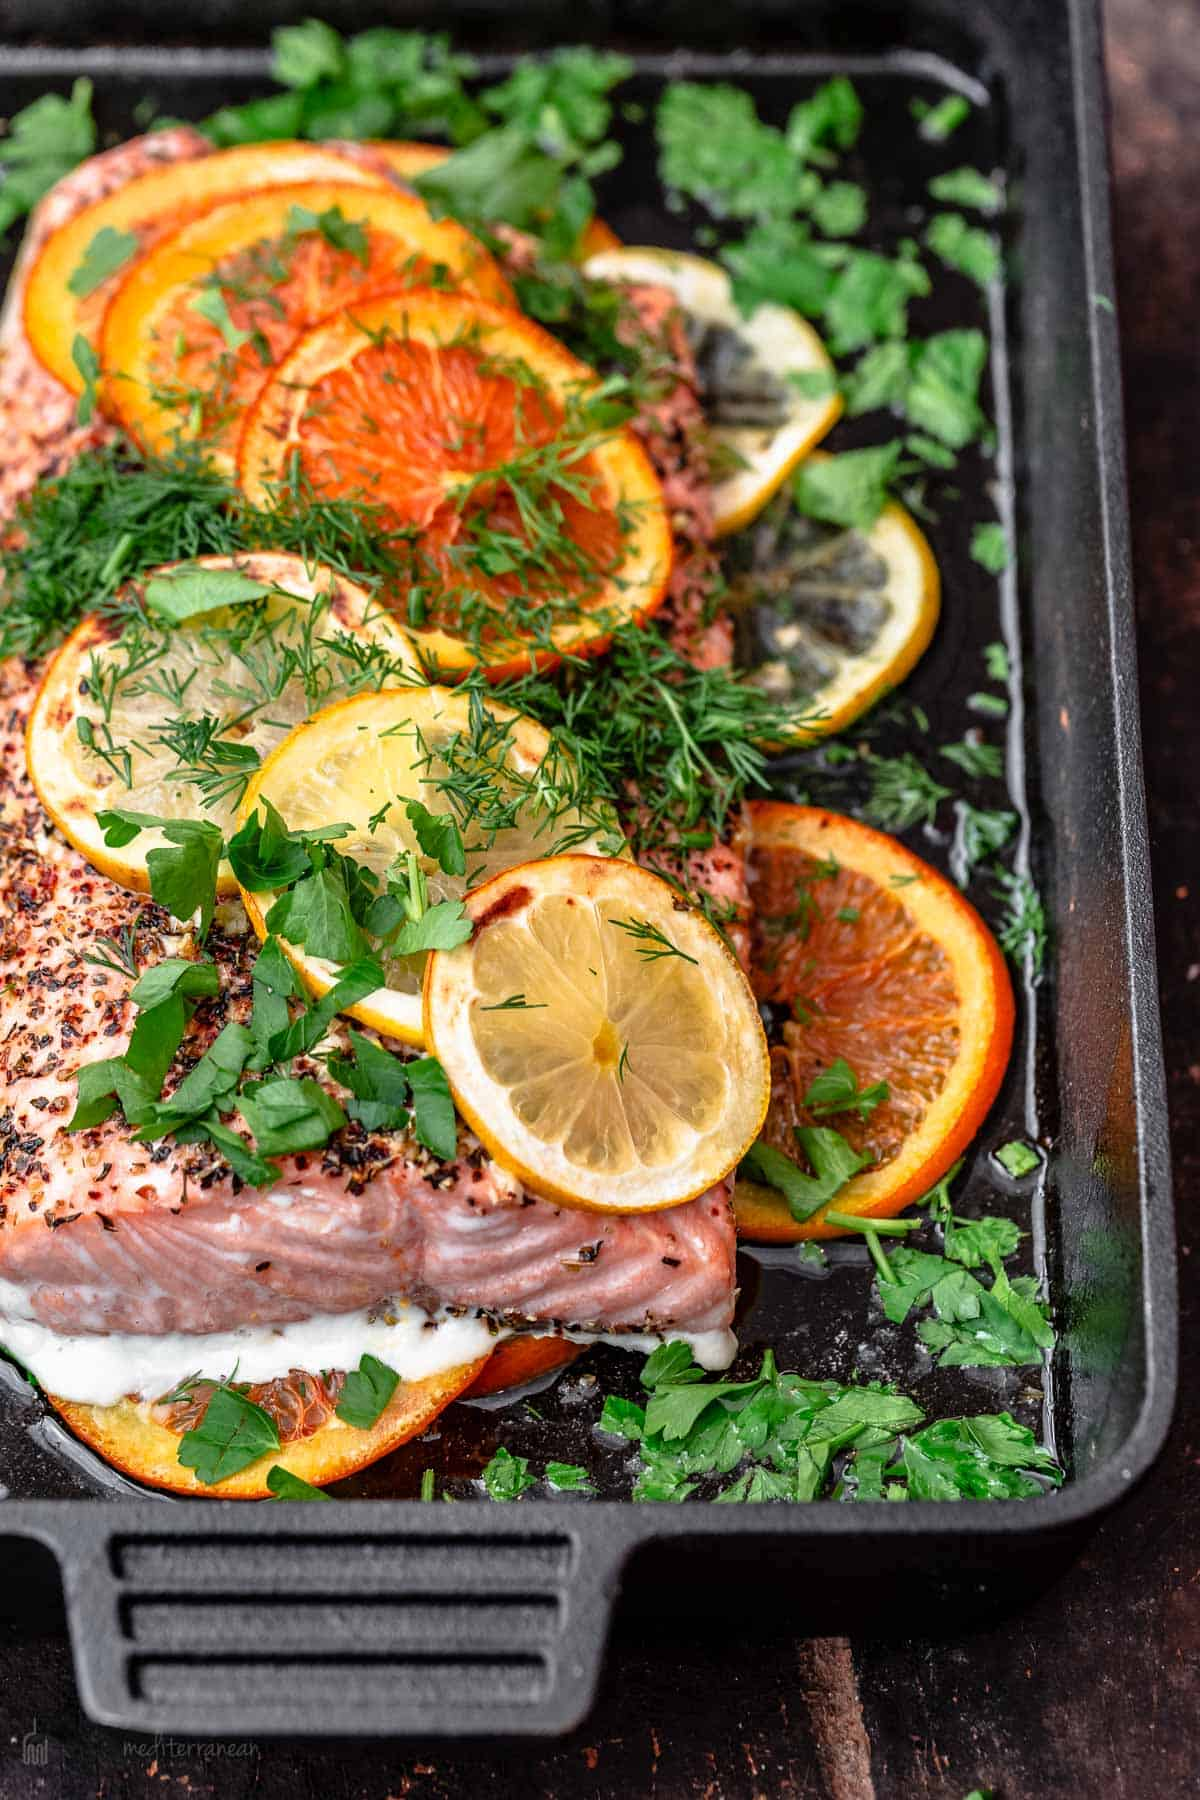 Salmon in cast iron skillet with slices of oranges